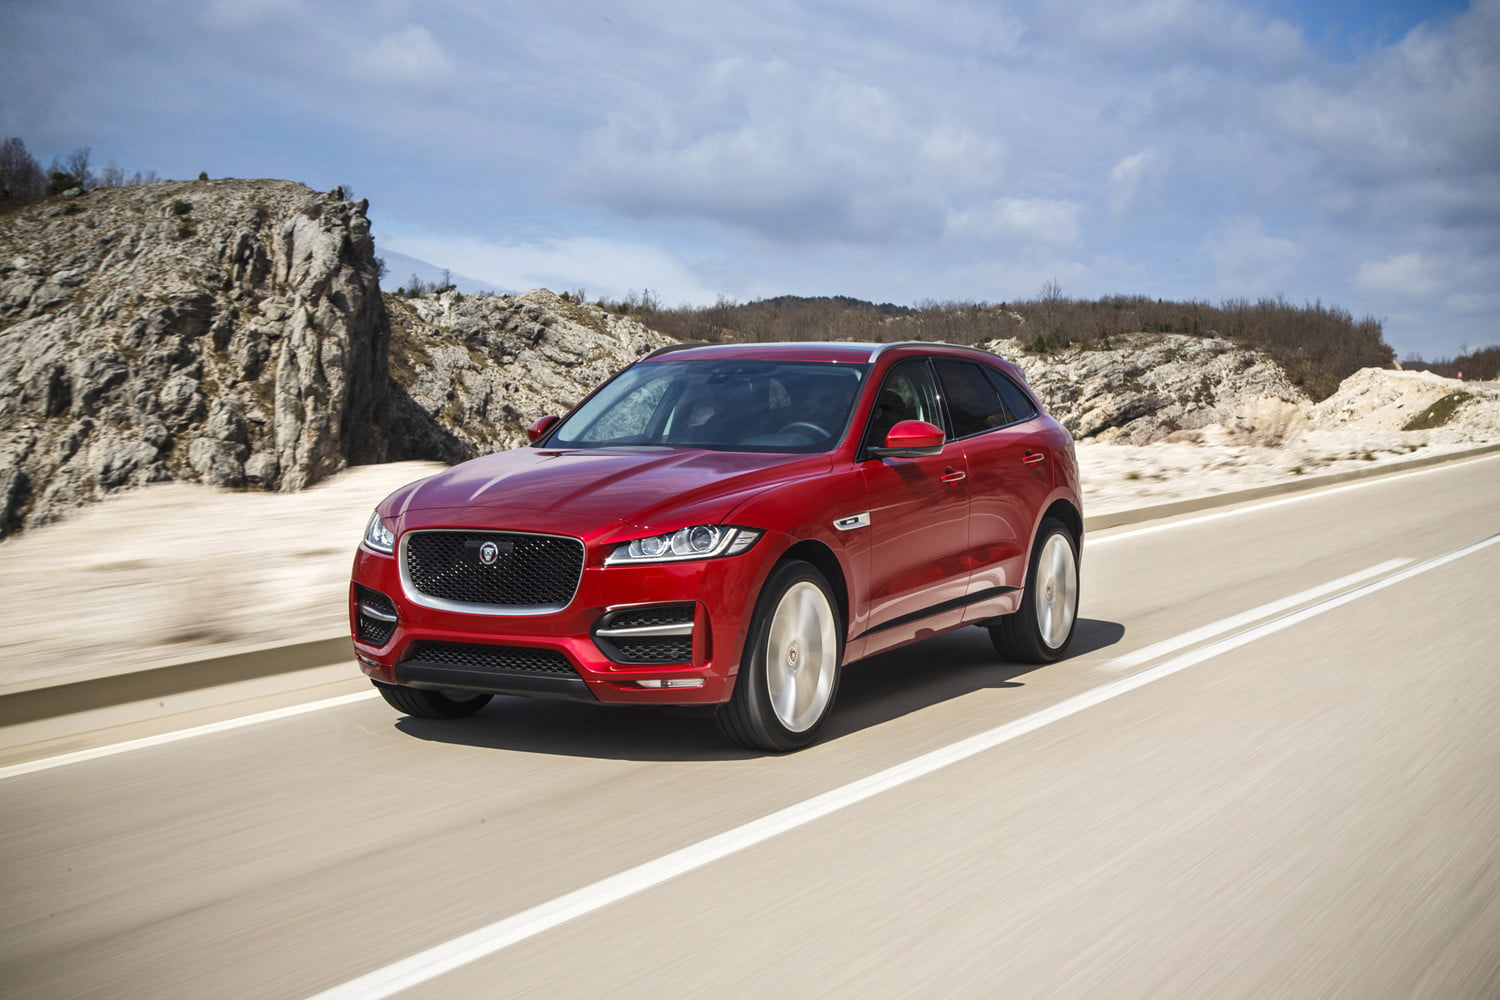 jaguar s best seller the f pace gets more tech for 19 but it kxxv central texas news now. Black Bedroom Furniture Sets. Home Design Ideas